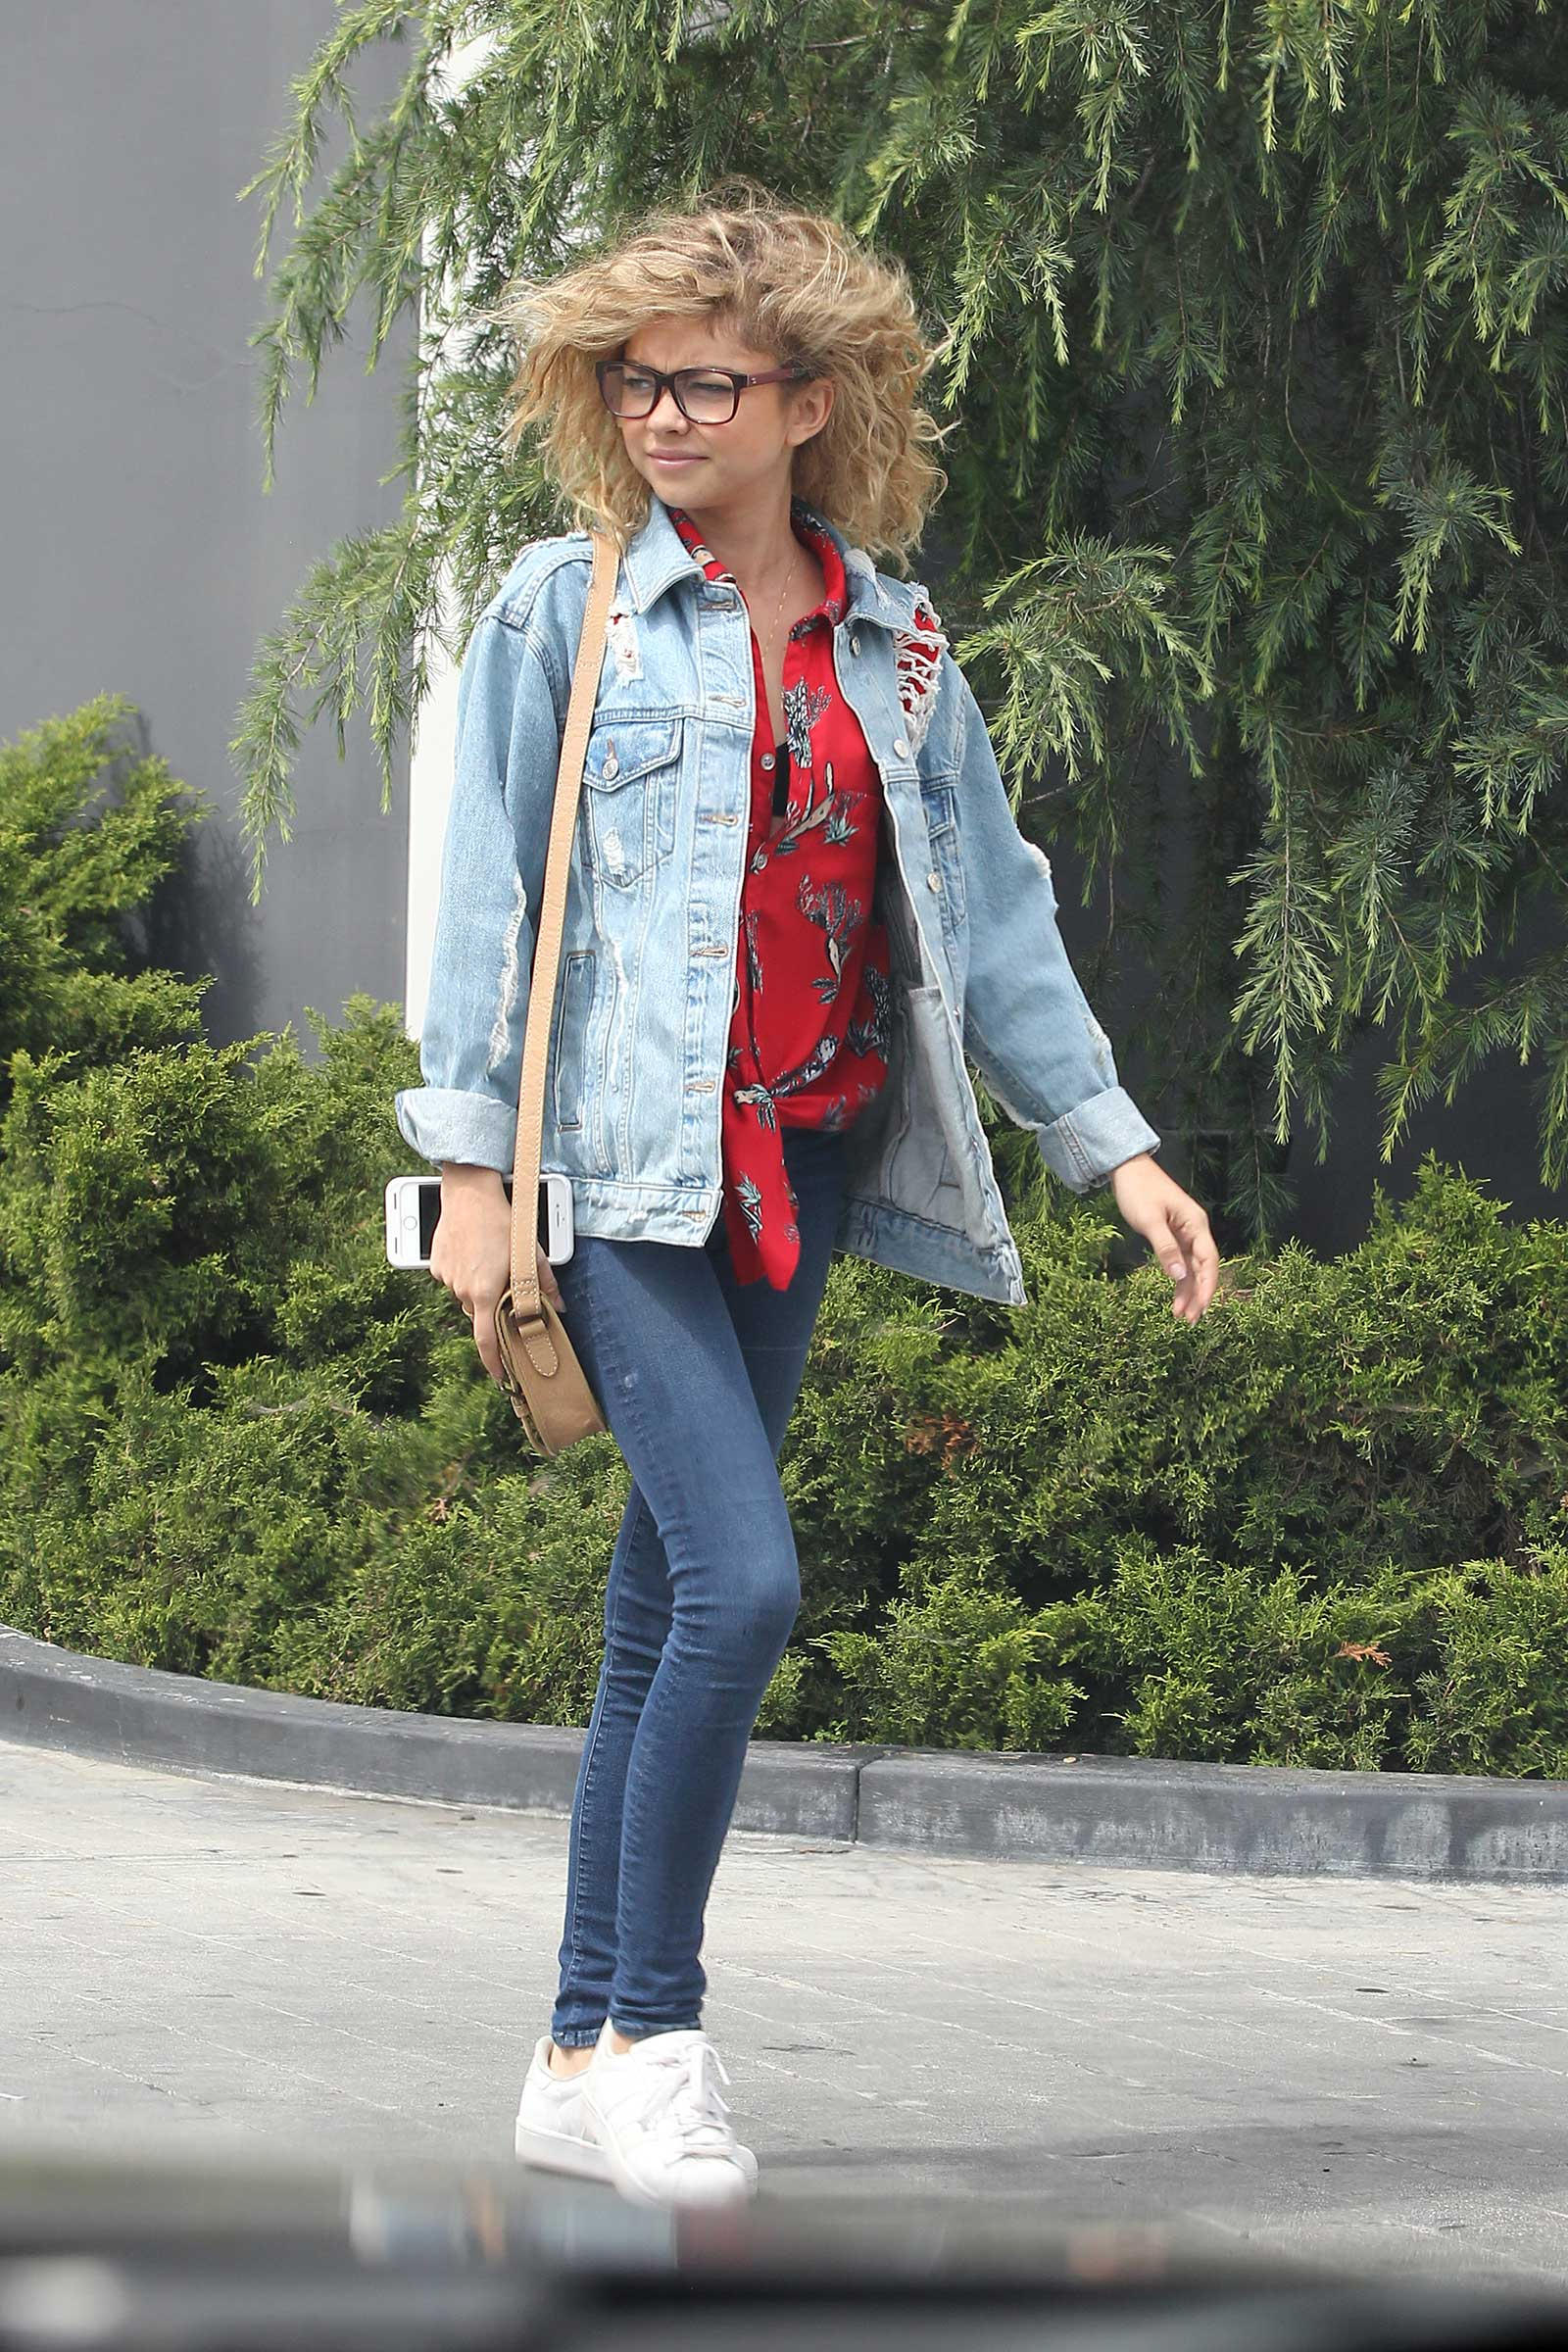 Sarah Hyland is cute and casual in a jean jacket, red print shirt and white sneakers.